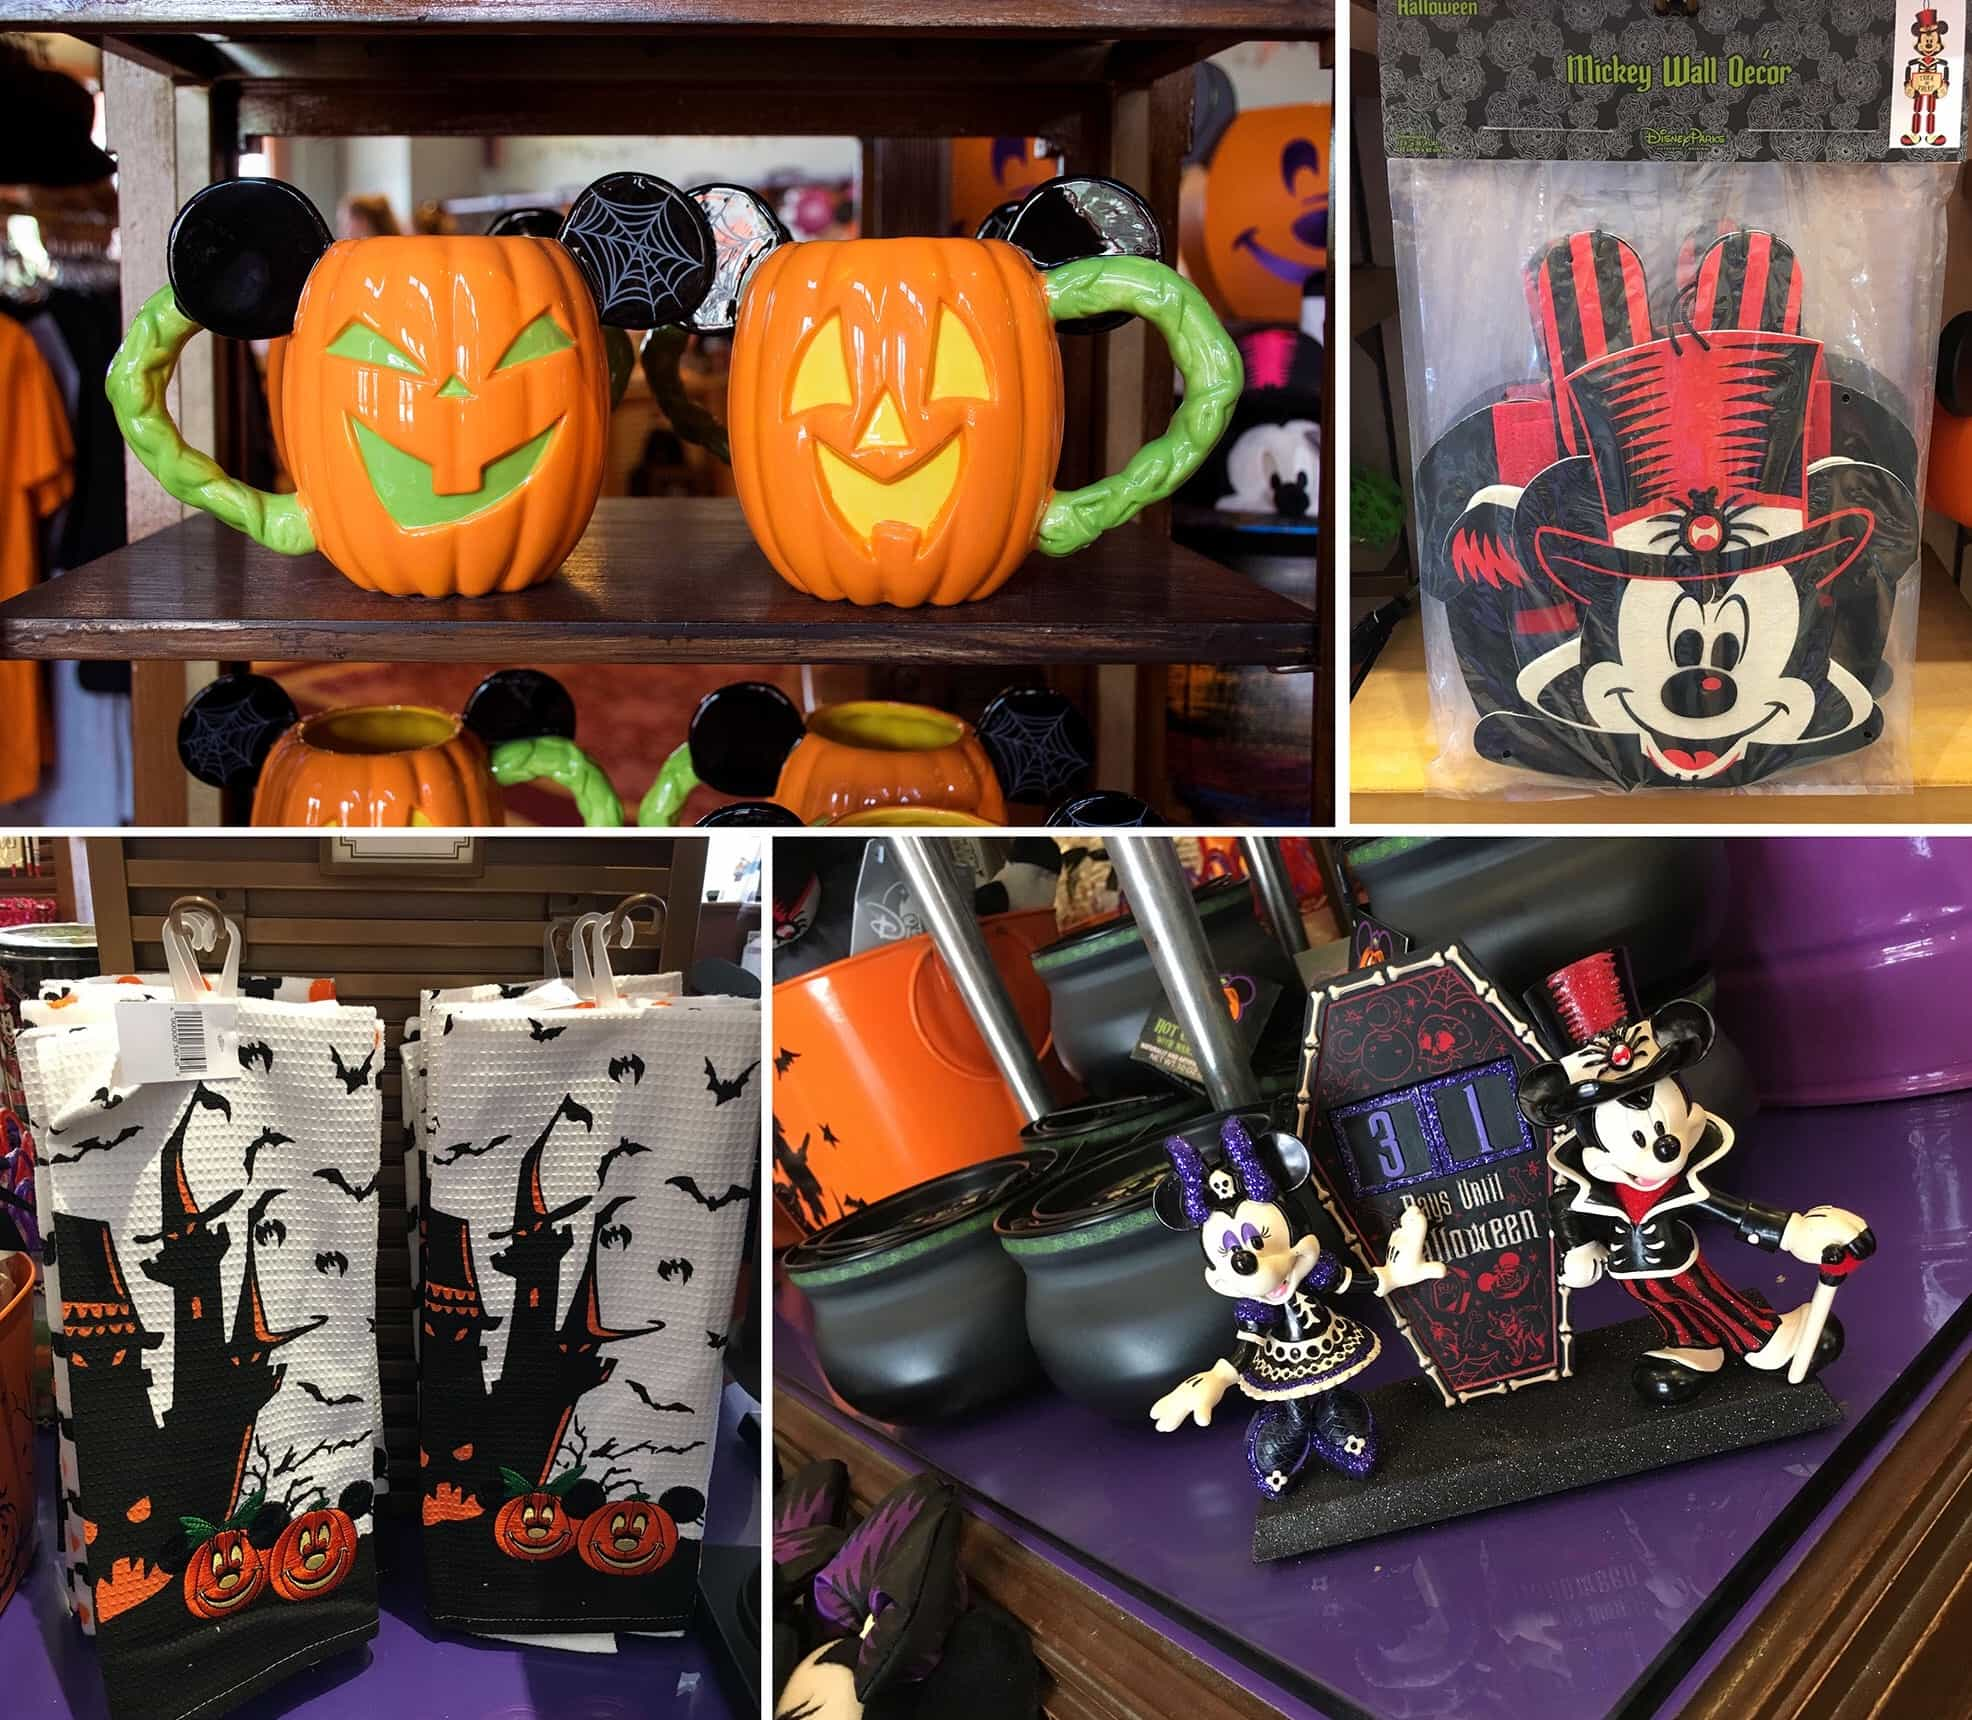 new disney halloween merchandise previews | | diskingdom